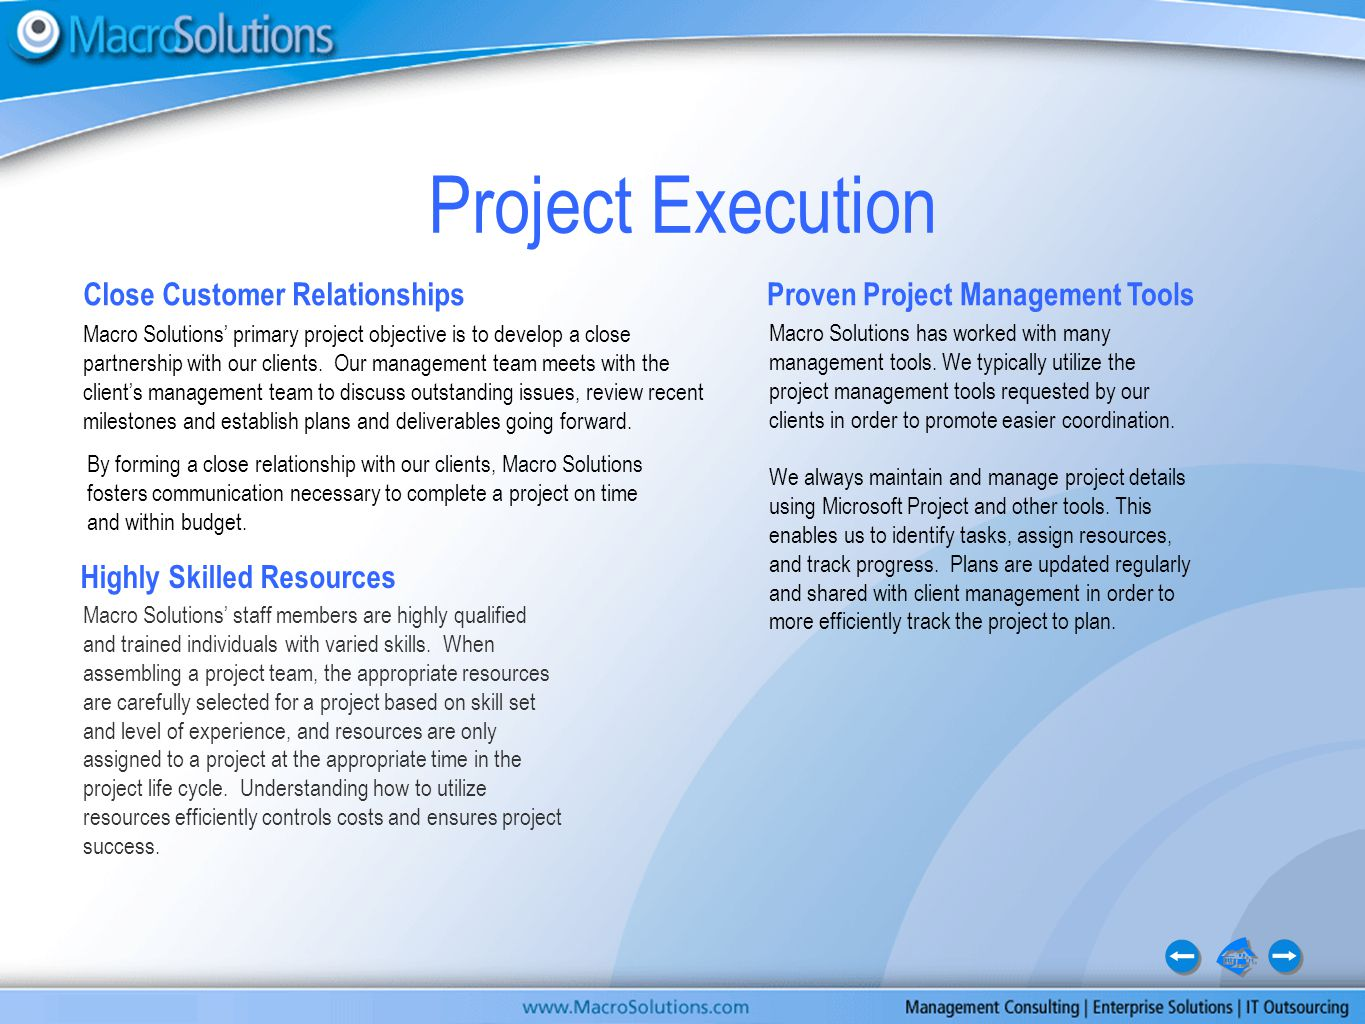 Macro Solutions' primary project objective is to develop a close partnership with our clients.